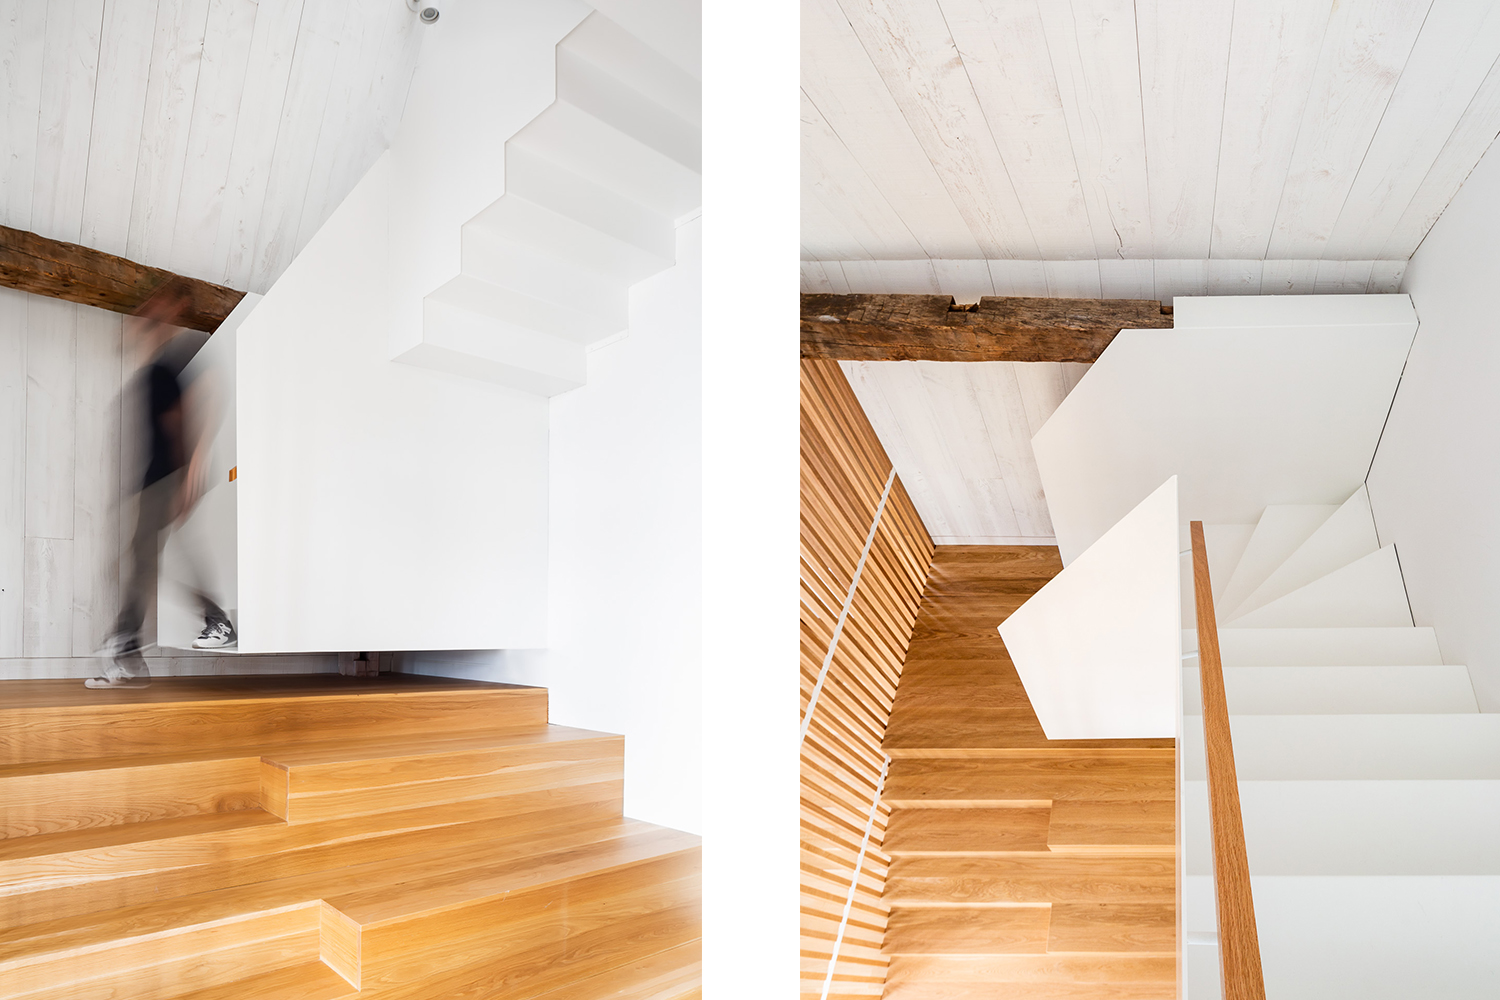 Stairs in 2 sections. Podium type base in white oak and top section suspended in white steel. Railing and handrail in oak. White painted hemlock wall